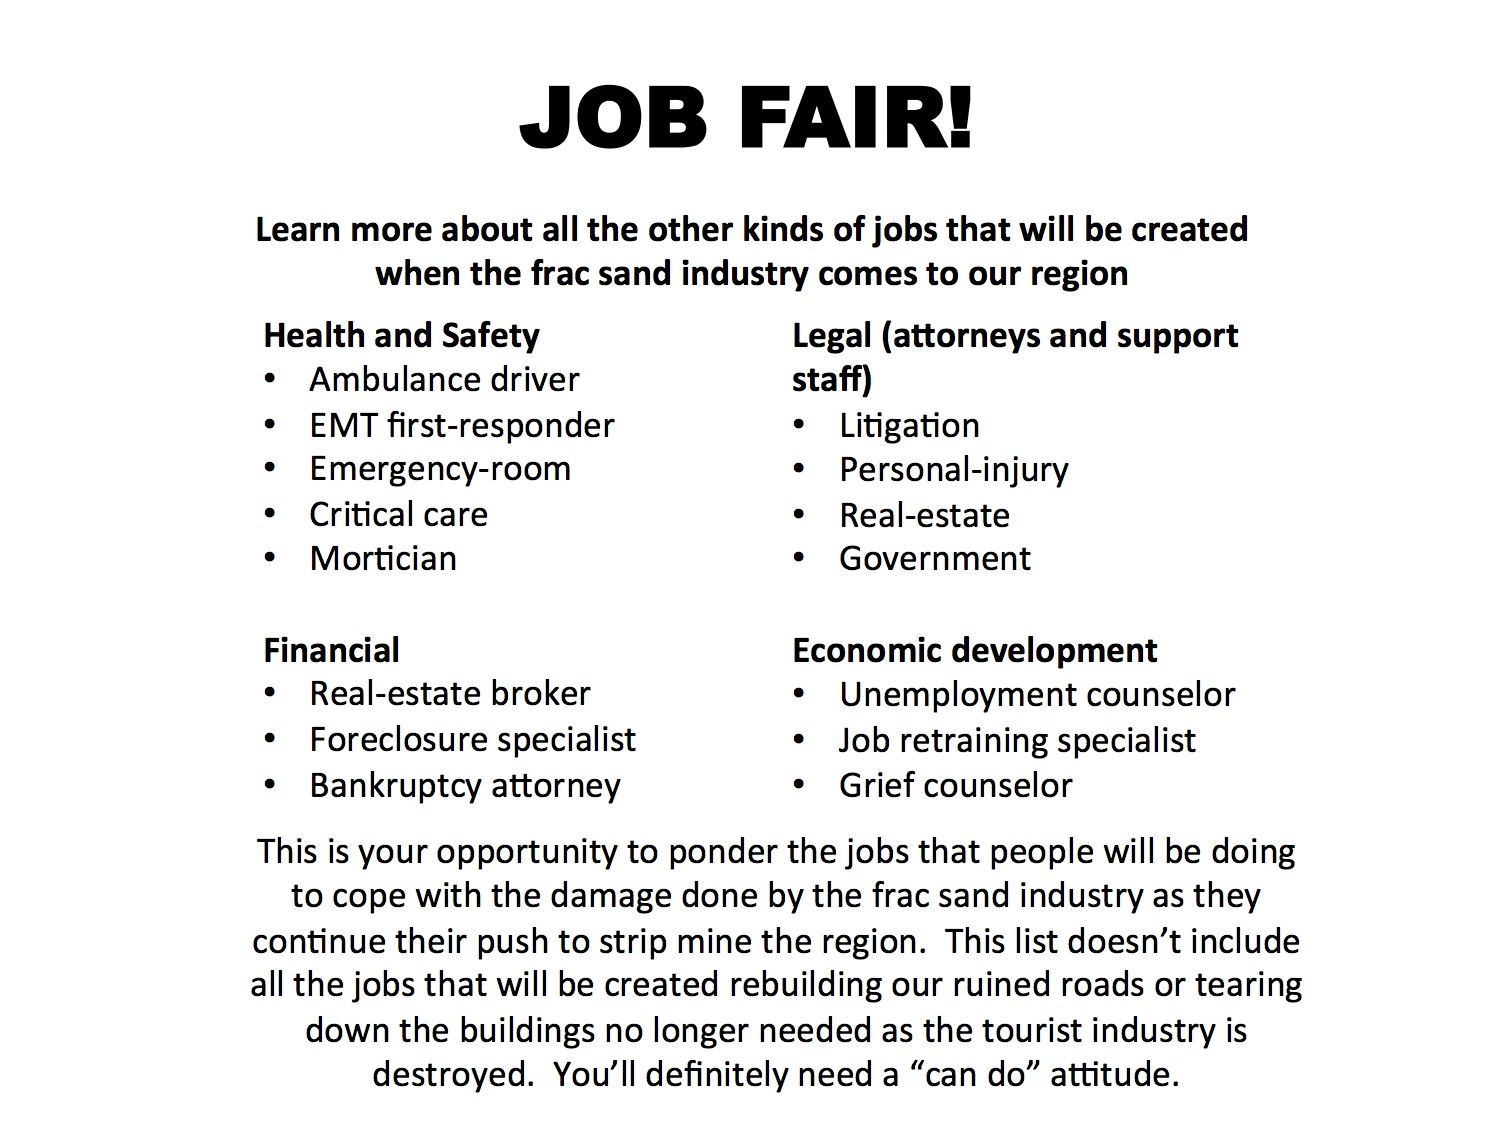 Job Fair The Frac Sand Frisbee